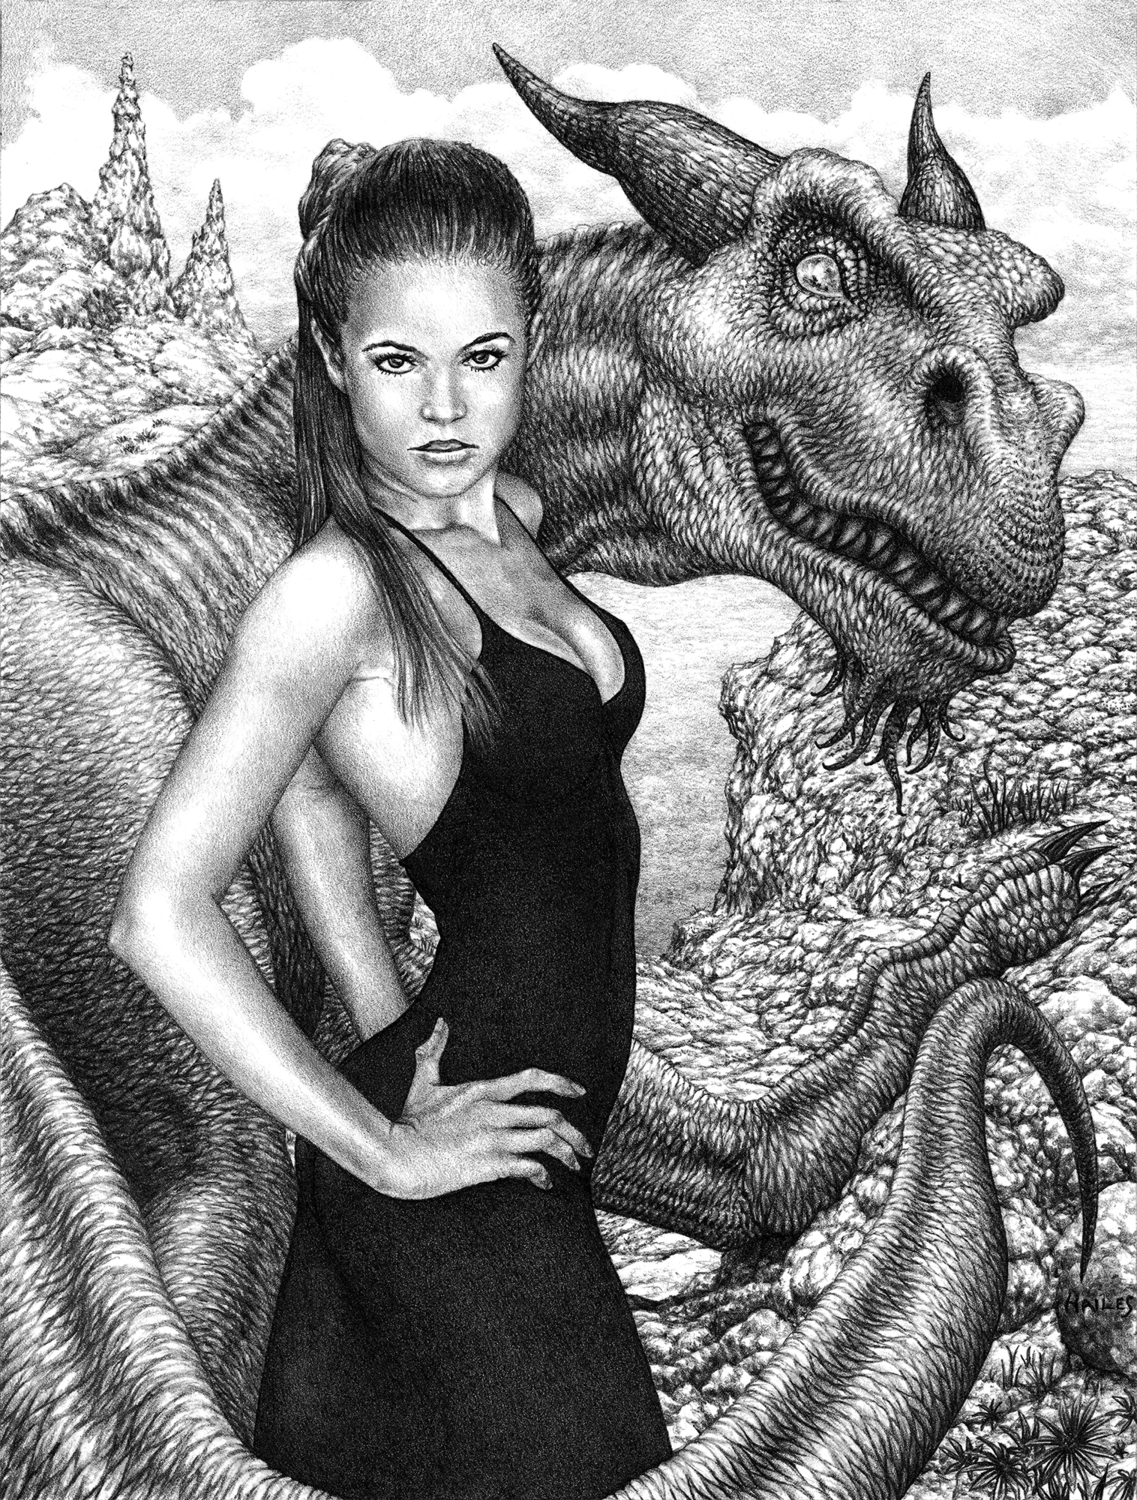 The Dragon's Temptress Artwork by Brian C. Hailes